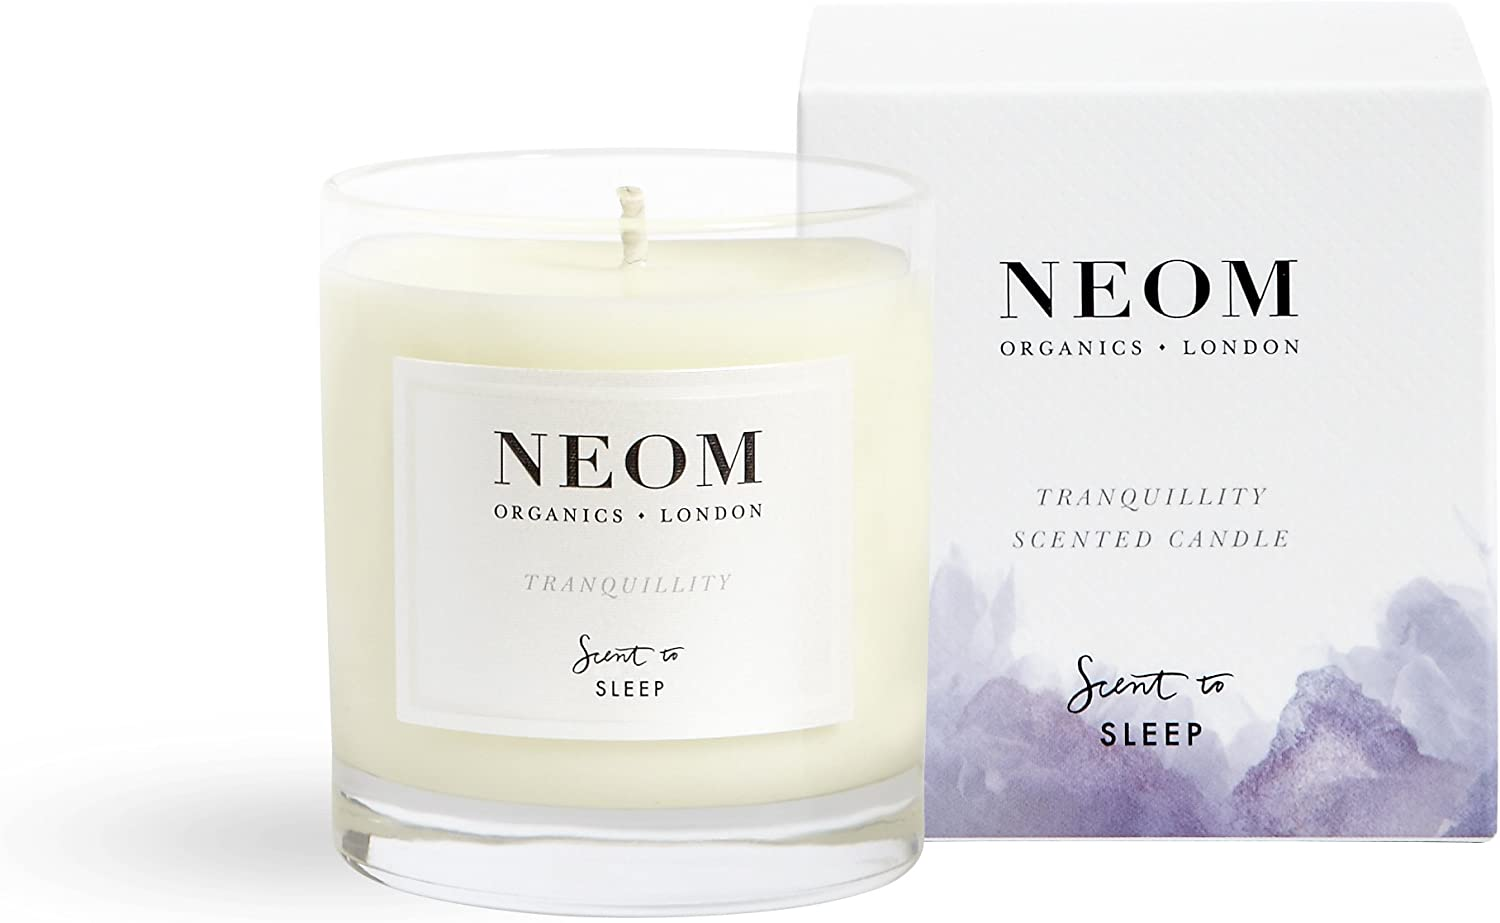 NEOM Organics 1 67% OFF of fixed price Wick Candle Tranquility 6.5 Denver Mall oz